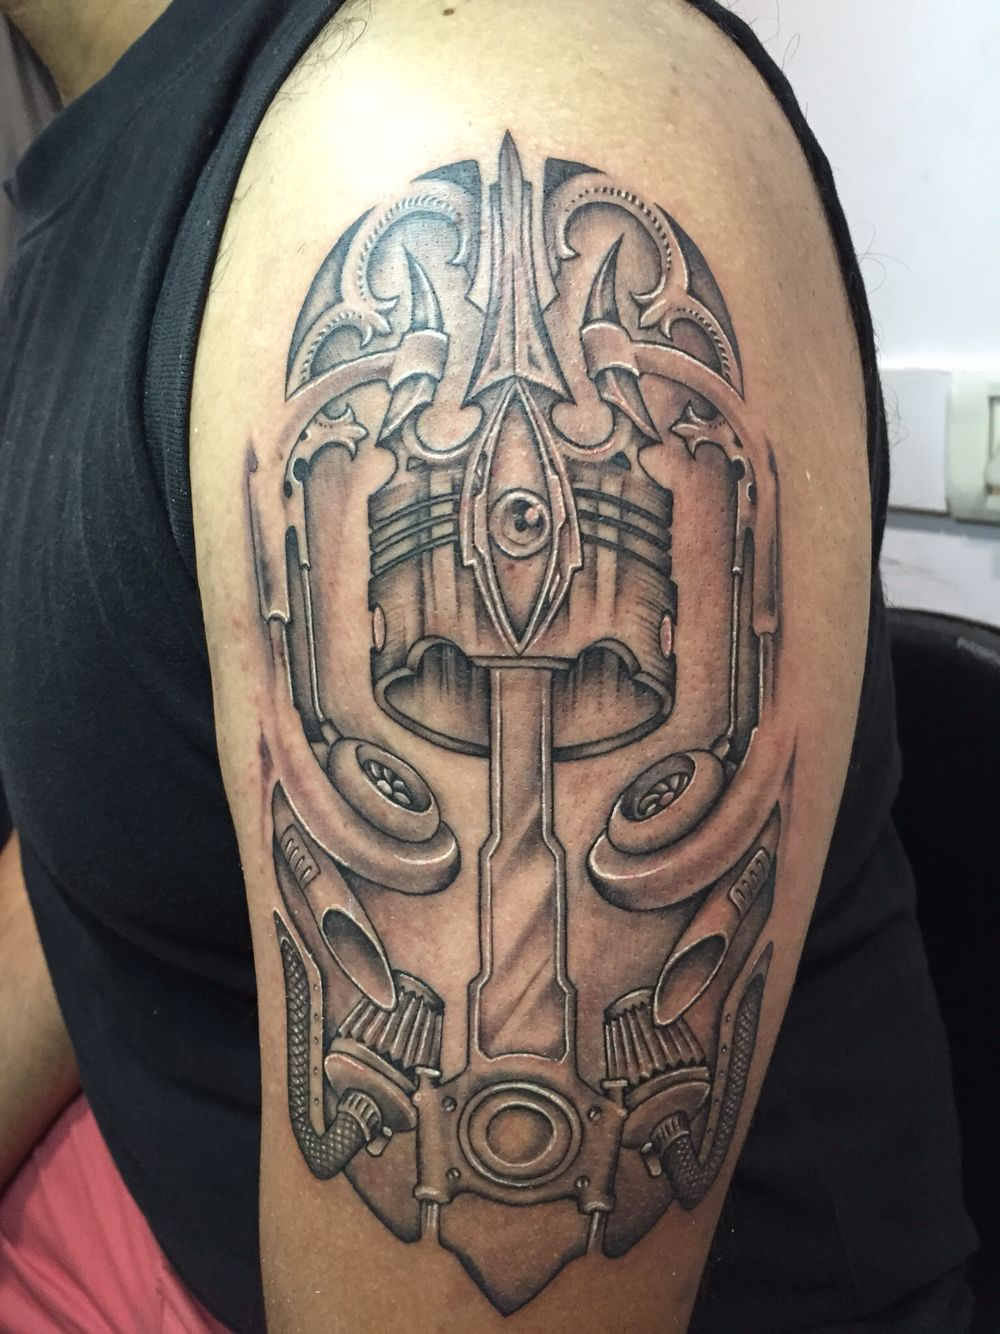 Mechanic wrench tattoo